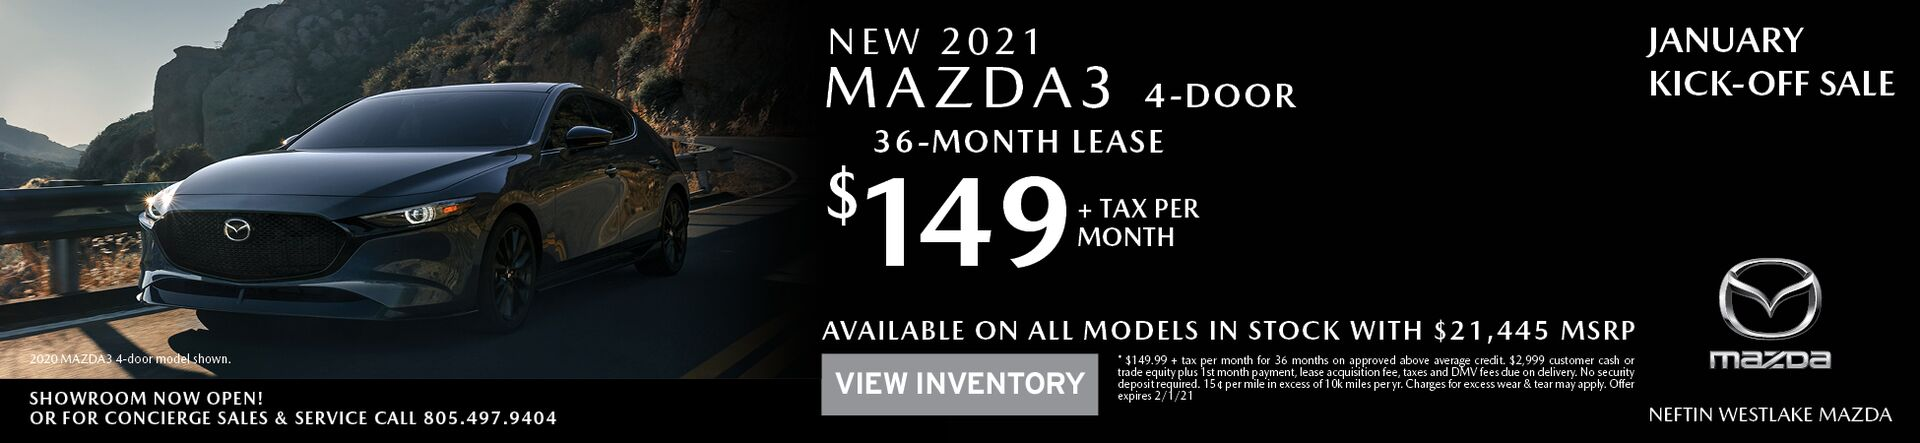 January '21 Mazda3 Sedan Lease Offer